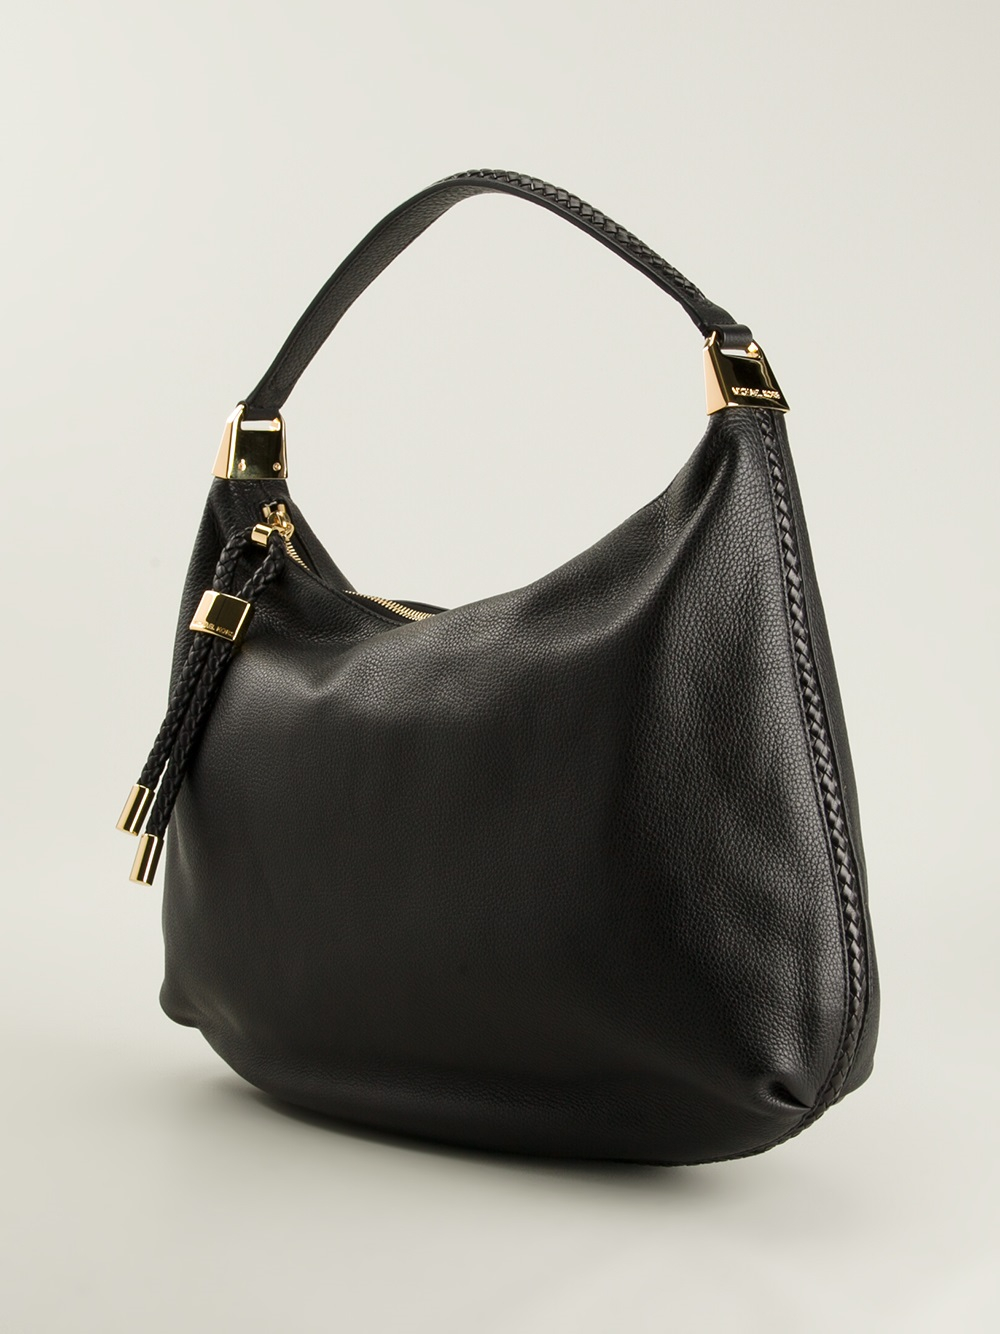 Michael Kors Skorpios Hobo Shoulder Bag in Black - Lyst